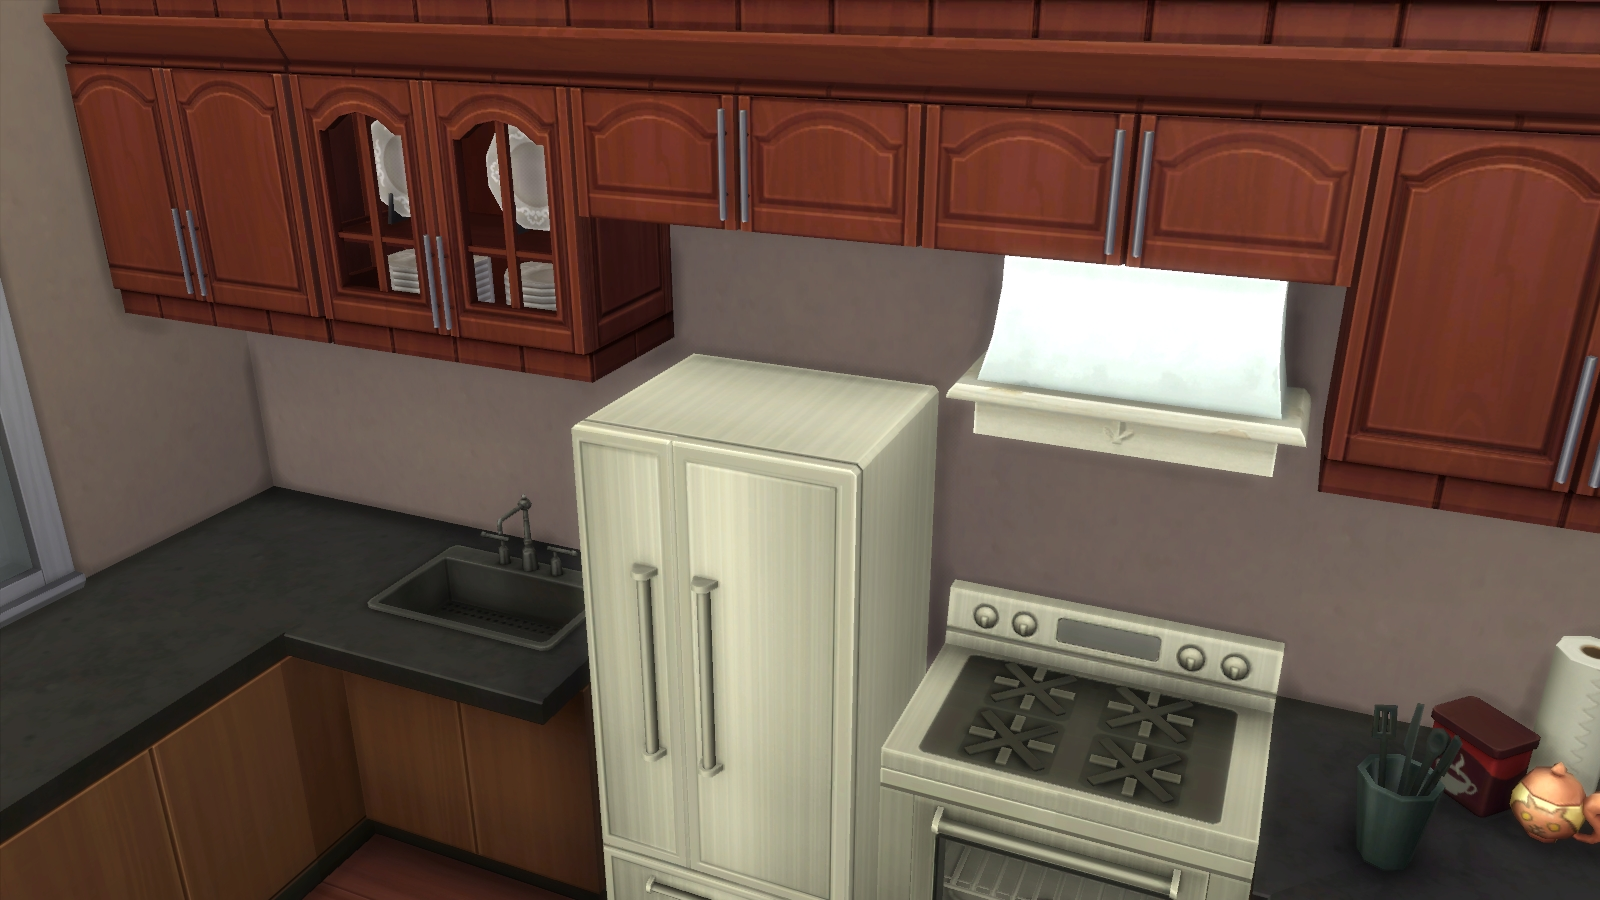 Setting up a bakery in the sims 4 get to work simcitizens for Kitchen set up for restaurant